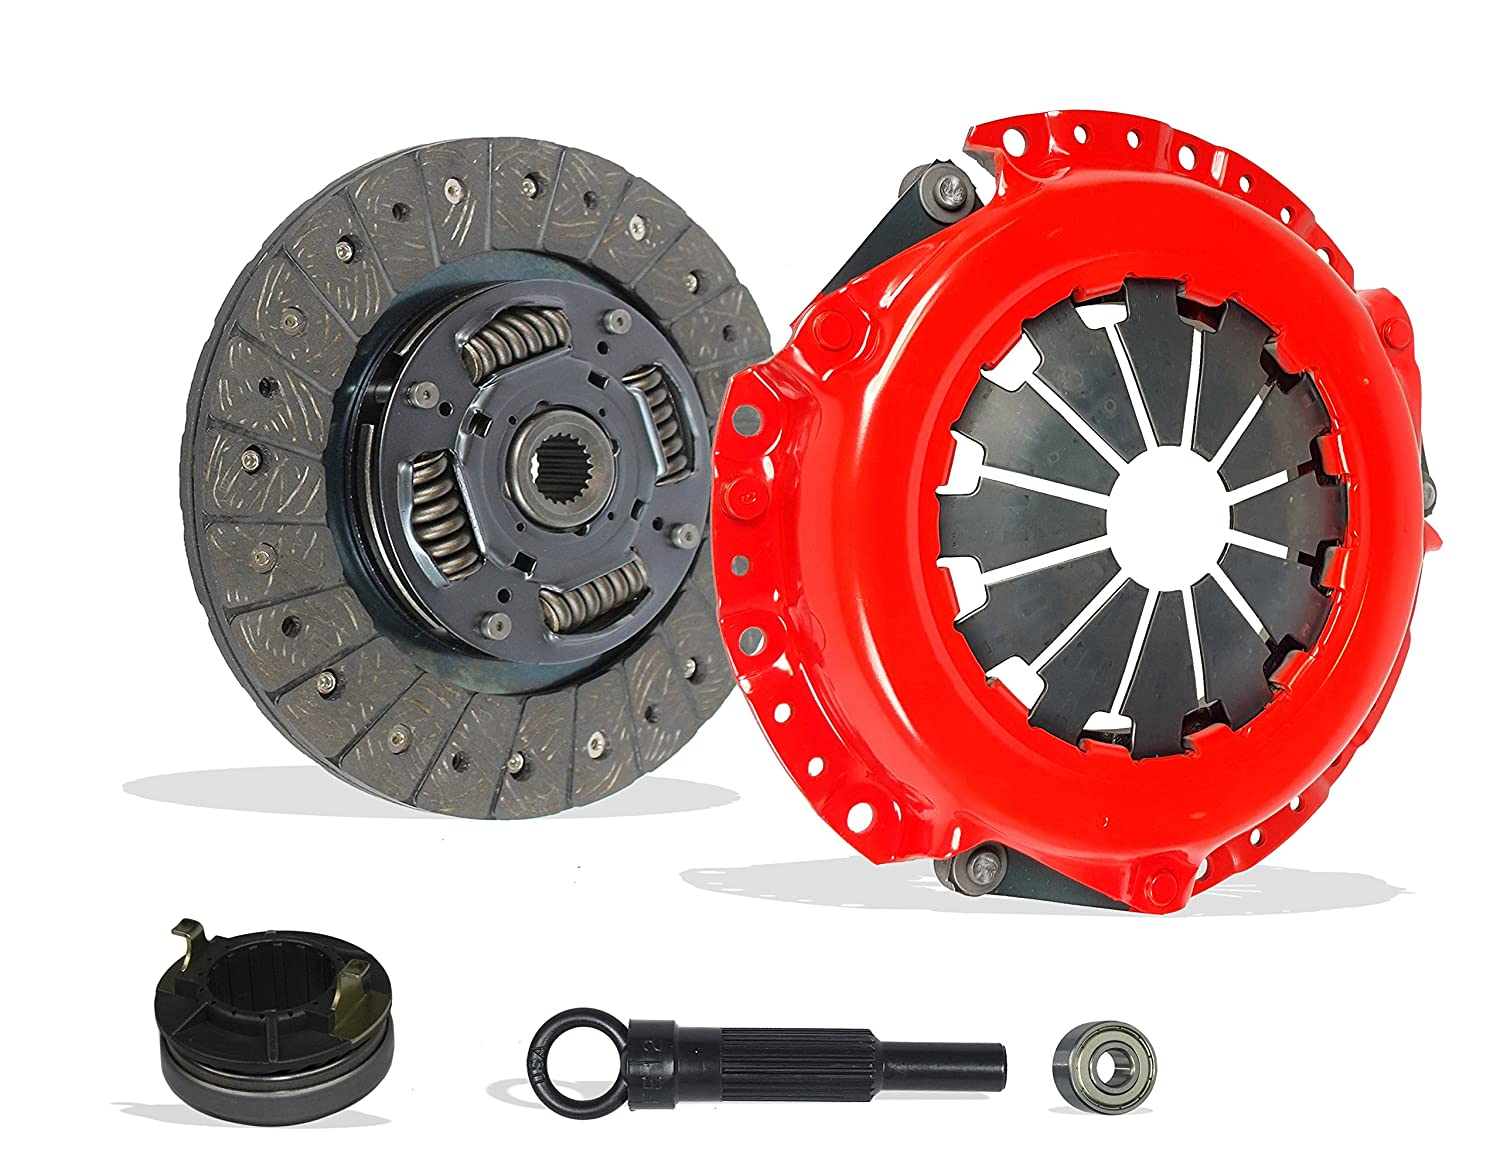 Amazon.com: Clutch Kit Set Works With Hyundai Accent Kia Rio Base Lx Sx Gls Gs Se Hatchback Sedan 2006-2011 1.6L l4 GAS DOHC Naturally Aspirated (Stage 1): ...